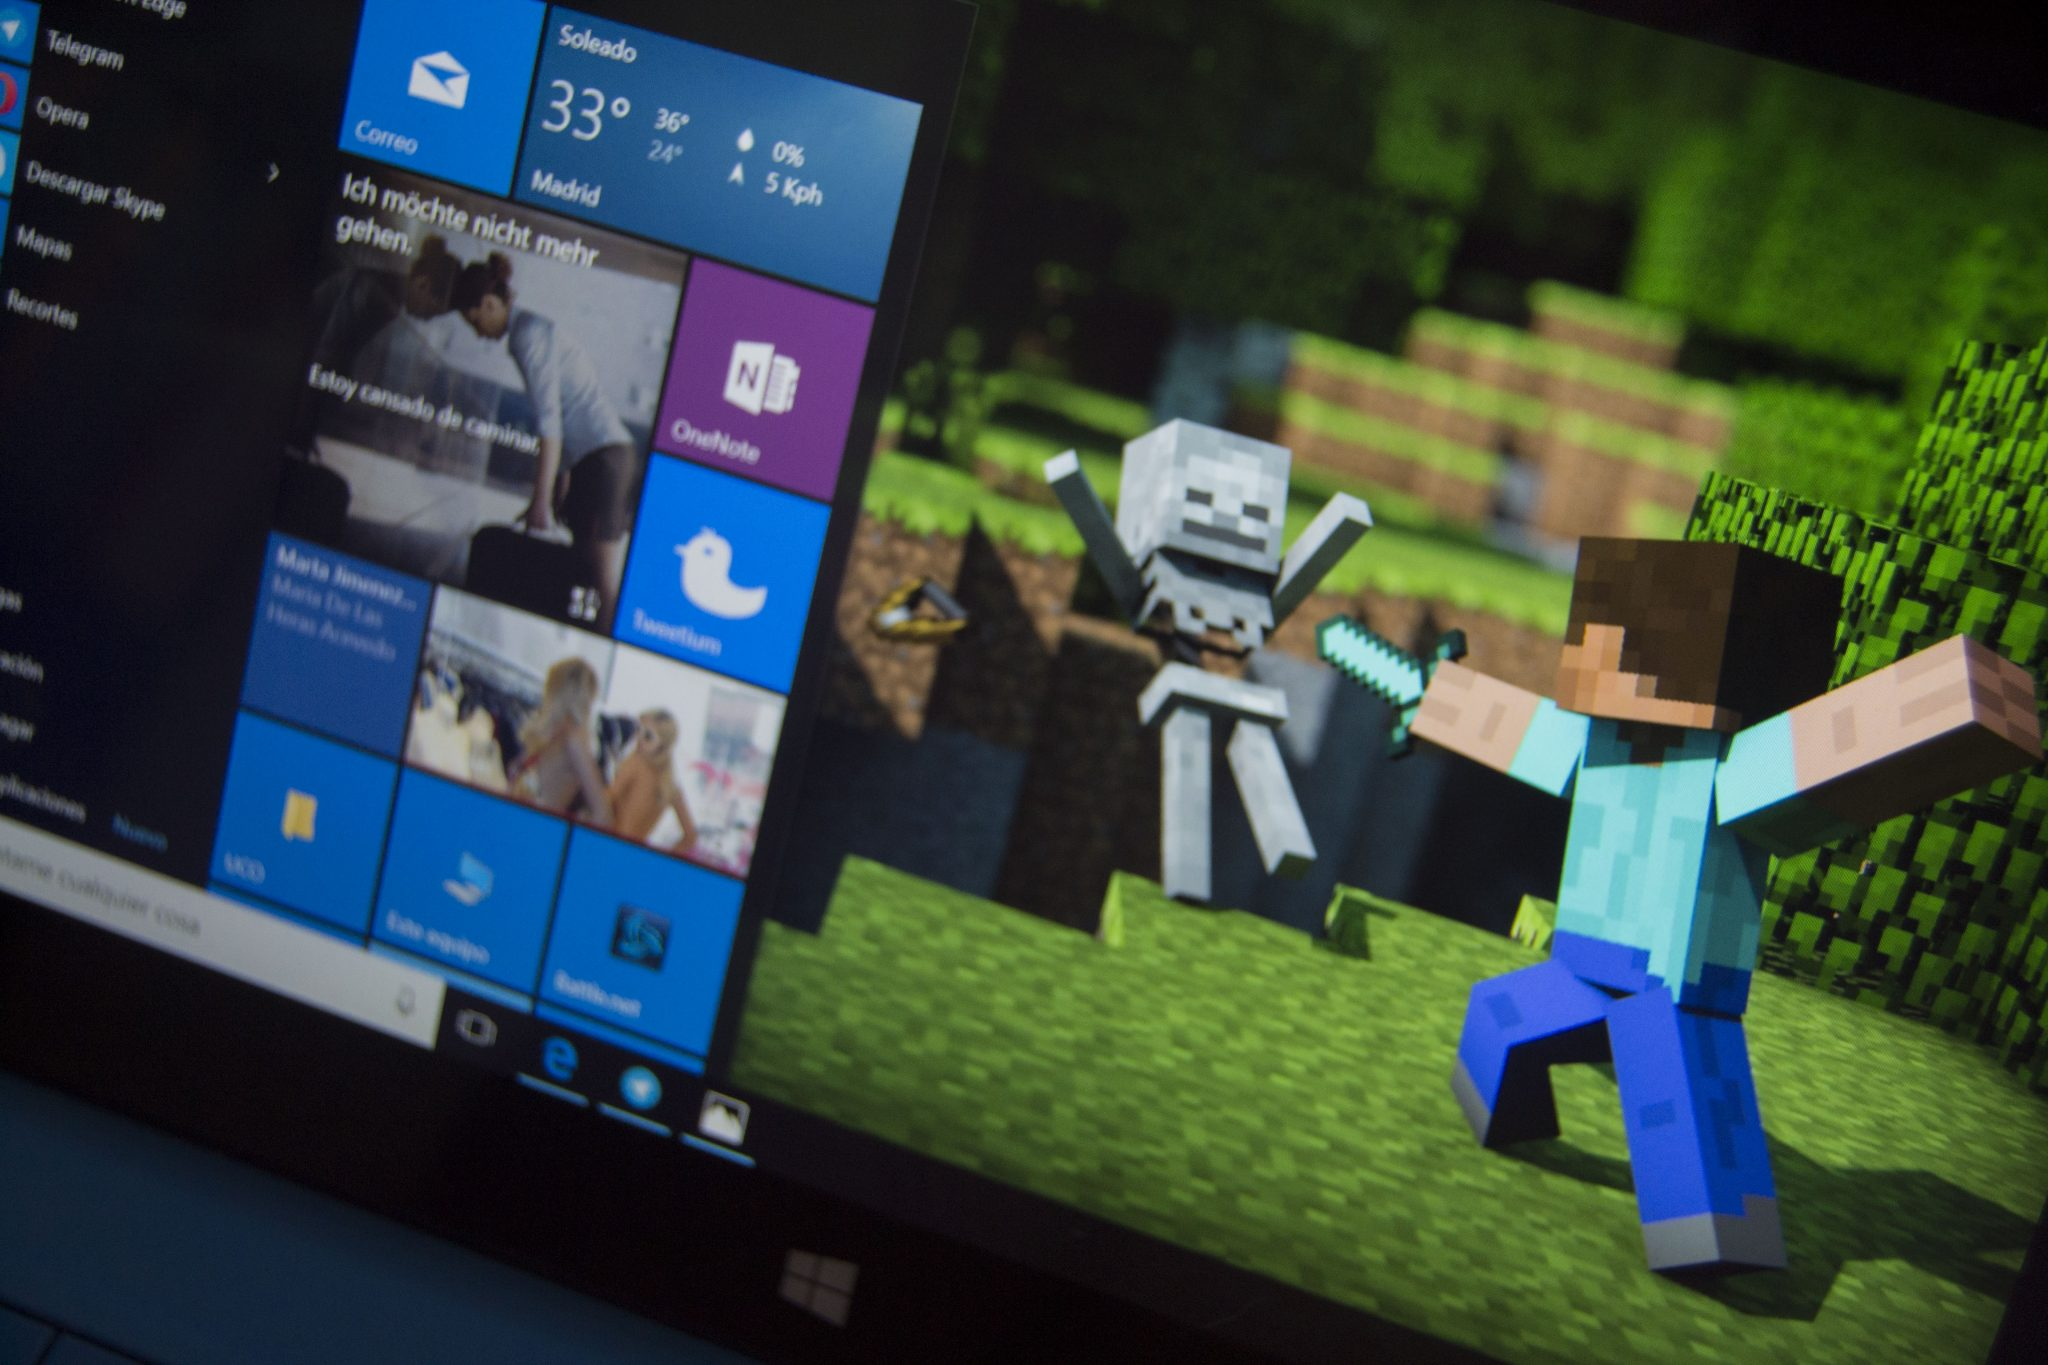 wallpaper de Minecraft para windows 10